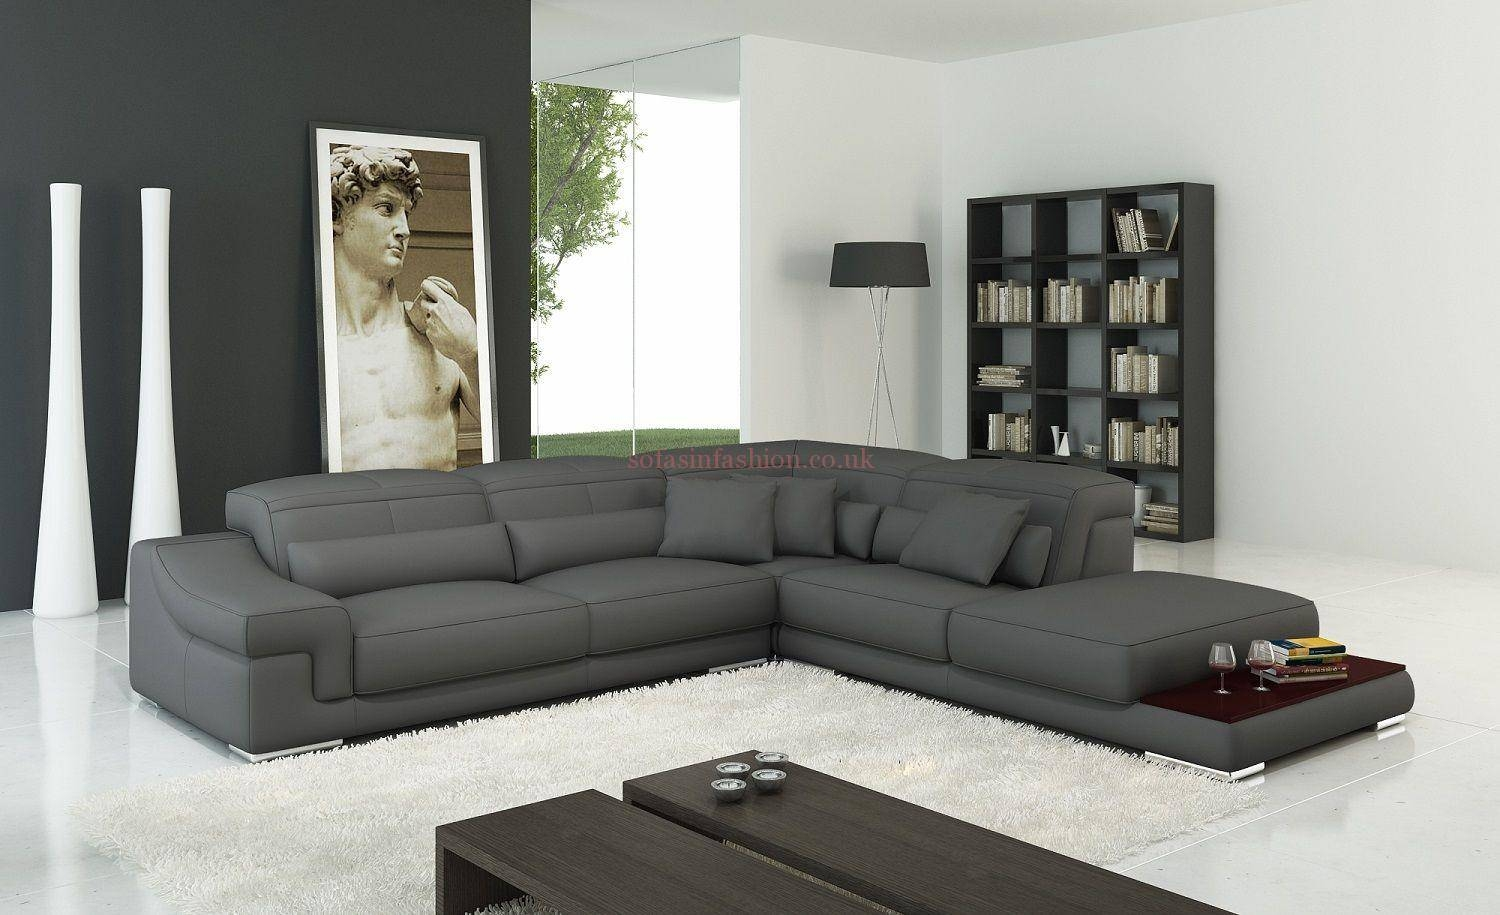 Elegant Leather Corner Sofa Fast Cheapest Viagra Prices Get An for Very Large Sofas (Image 9 of 30)